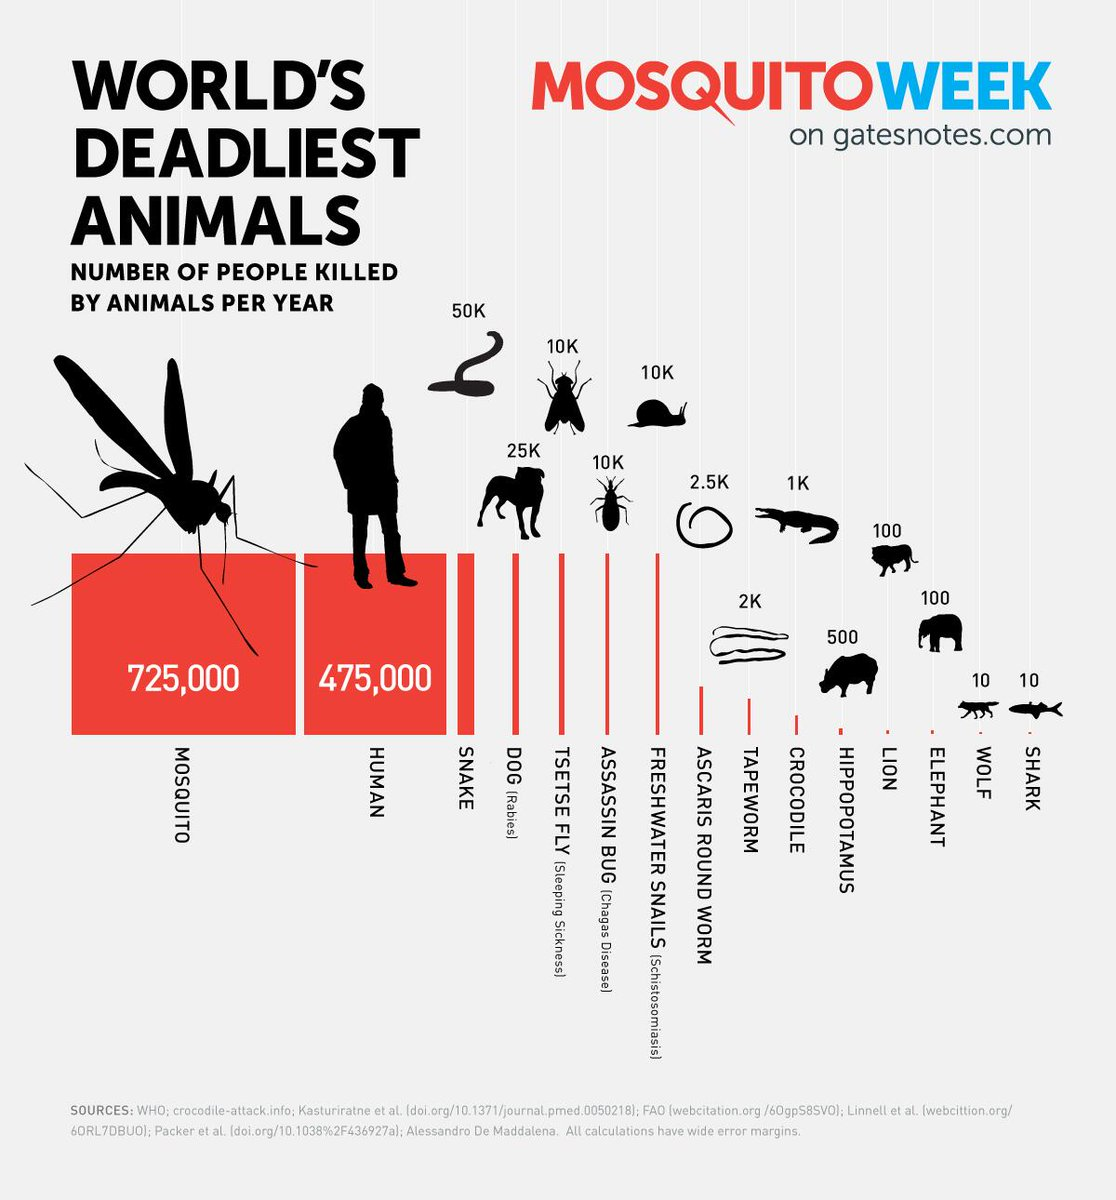 Hey @SharkWeek, sharks are cool, but they're not even close to being the deadliest animal:  http://t.co/bvE7TuaBZF http://t.co/aWjbnw46N4